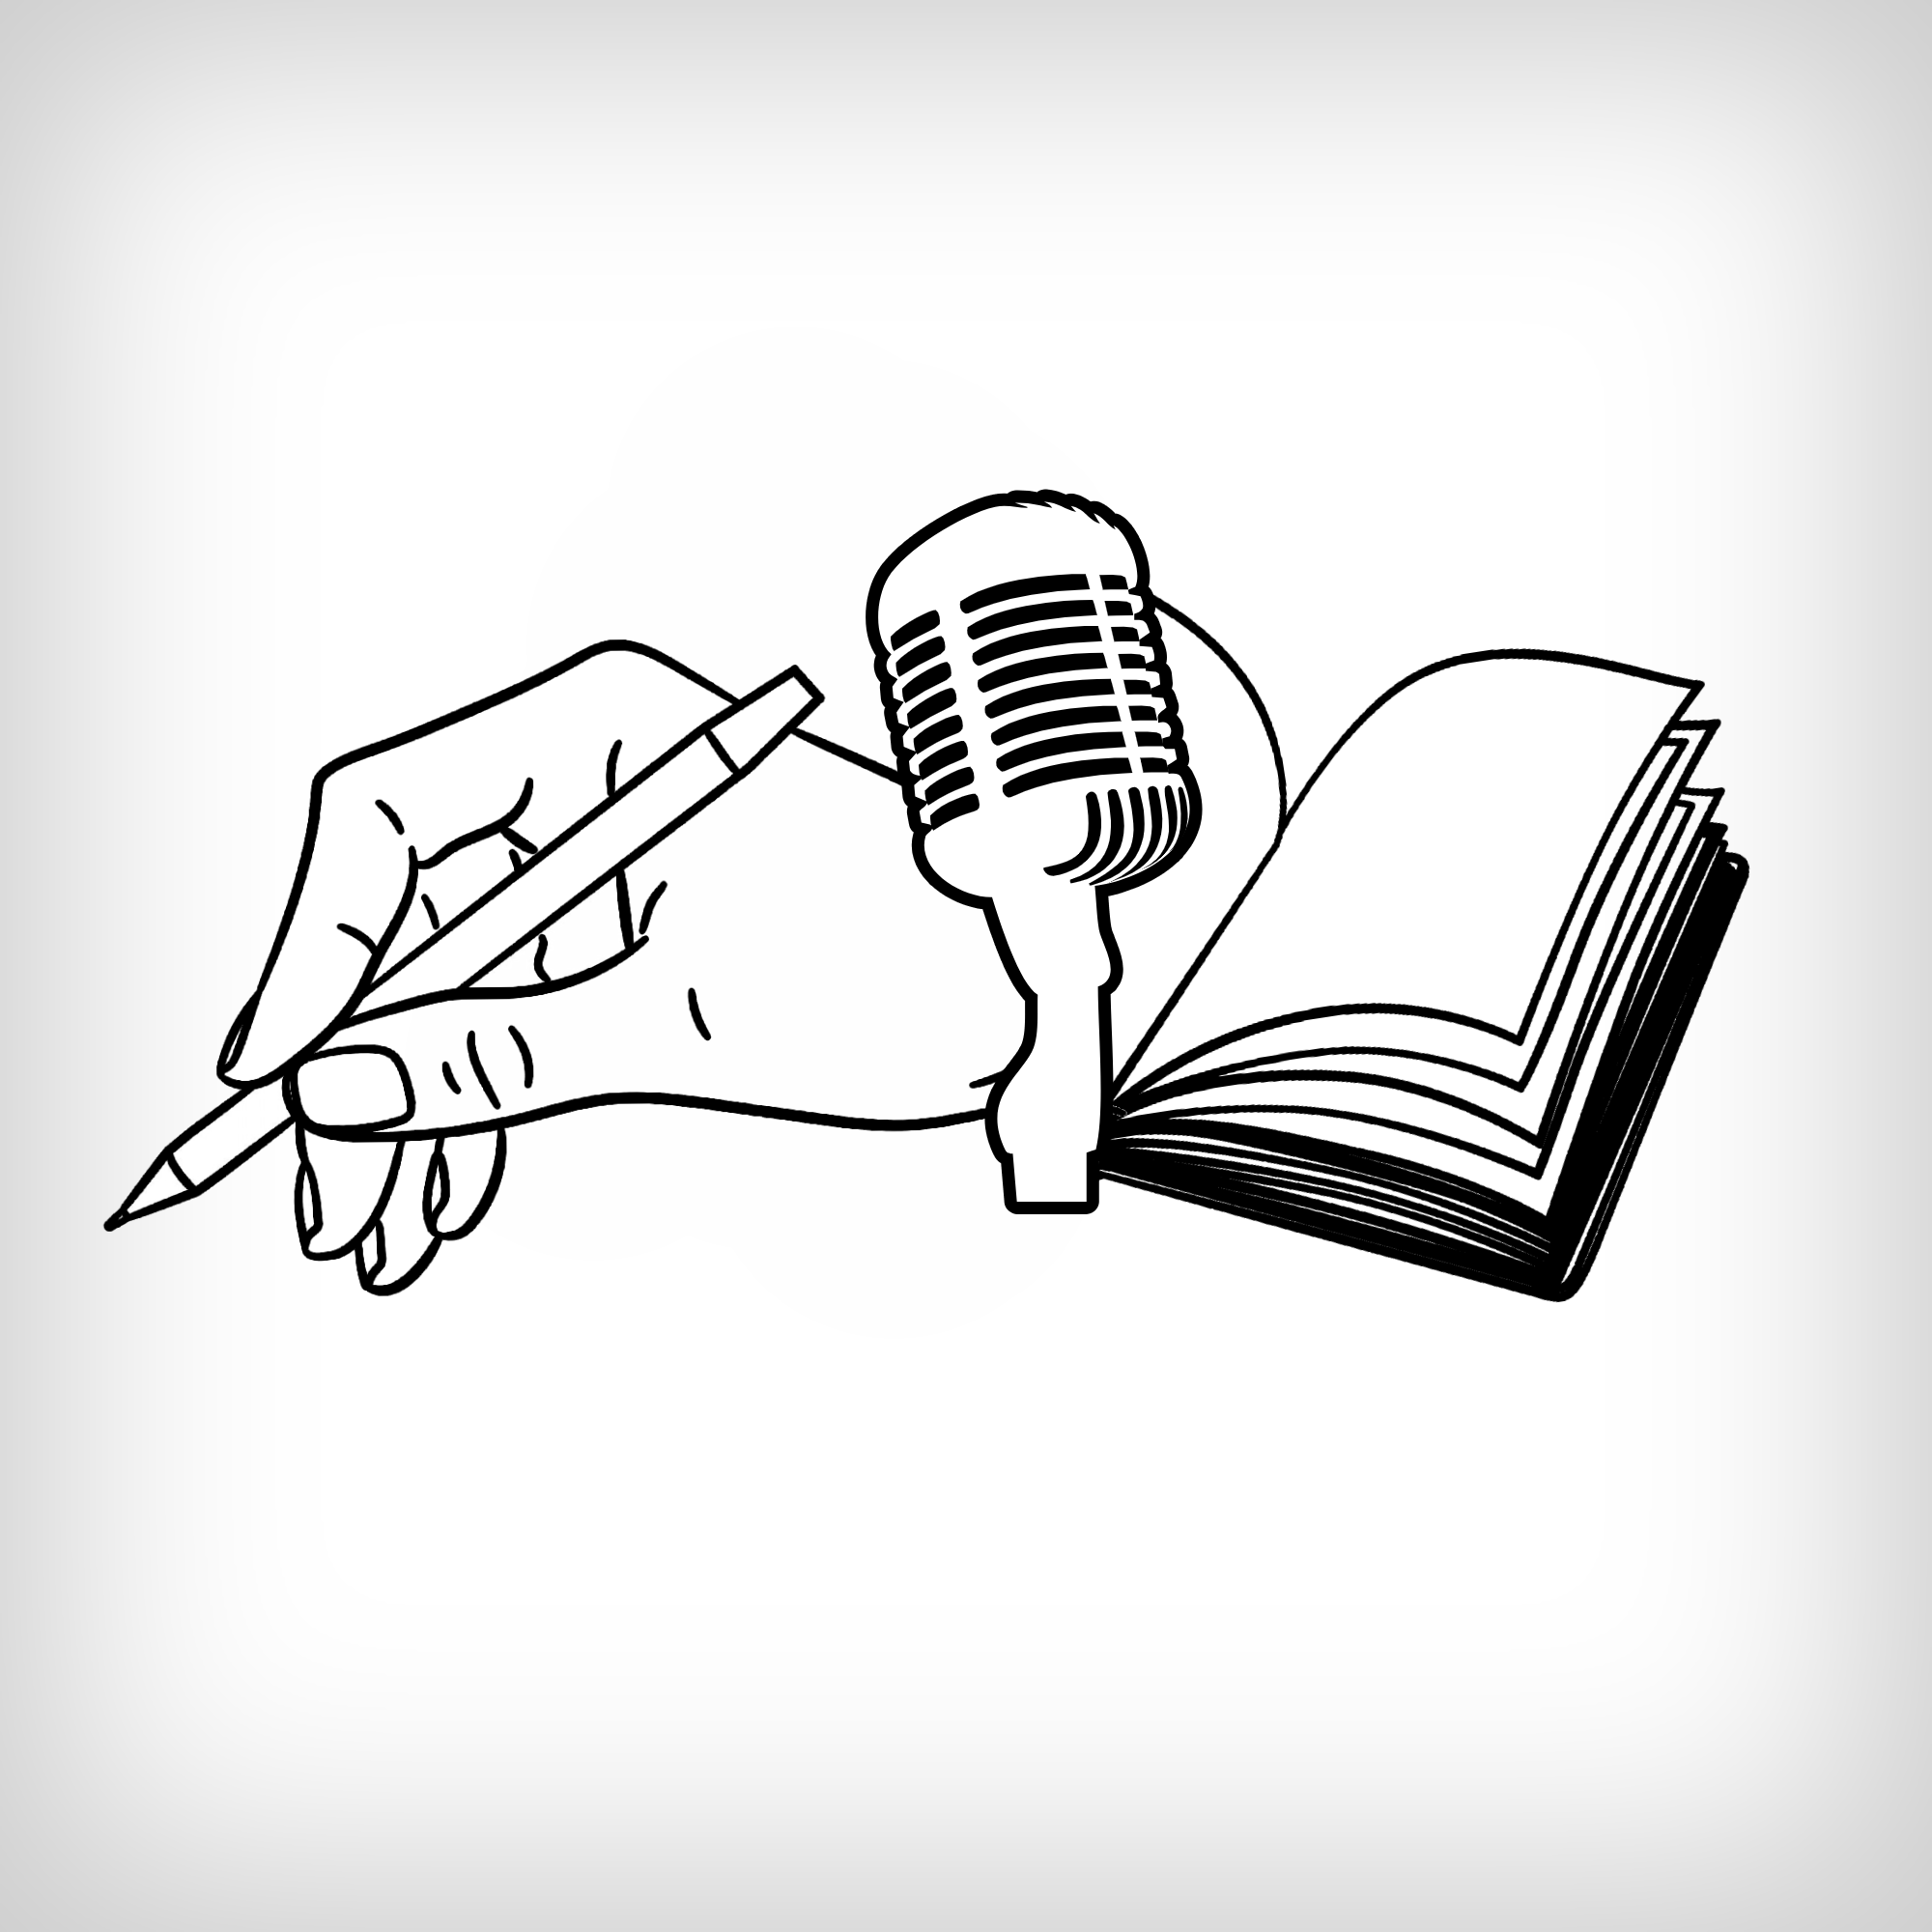 Audio Anthologies - A Creative Writing project written, recorded, and produced by students